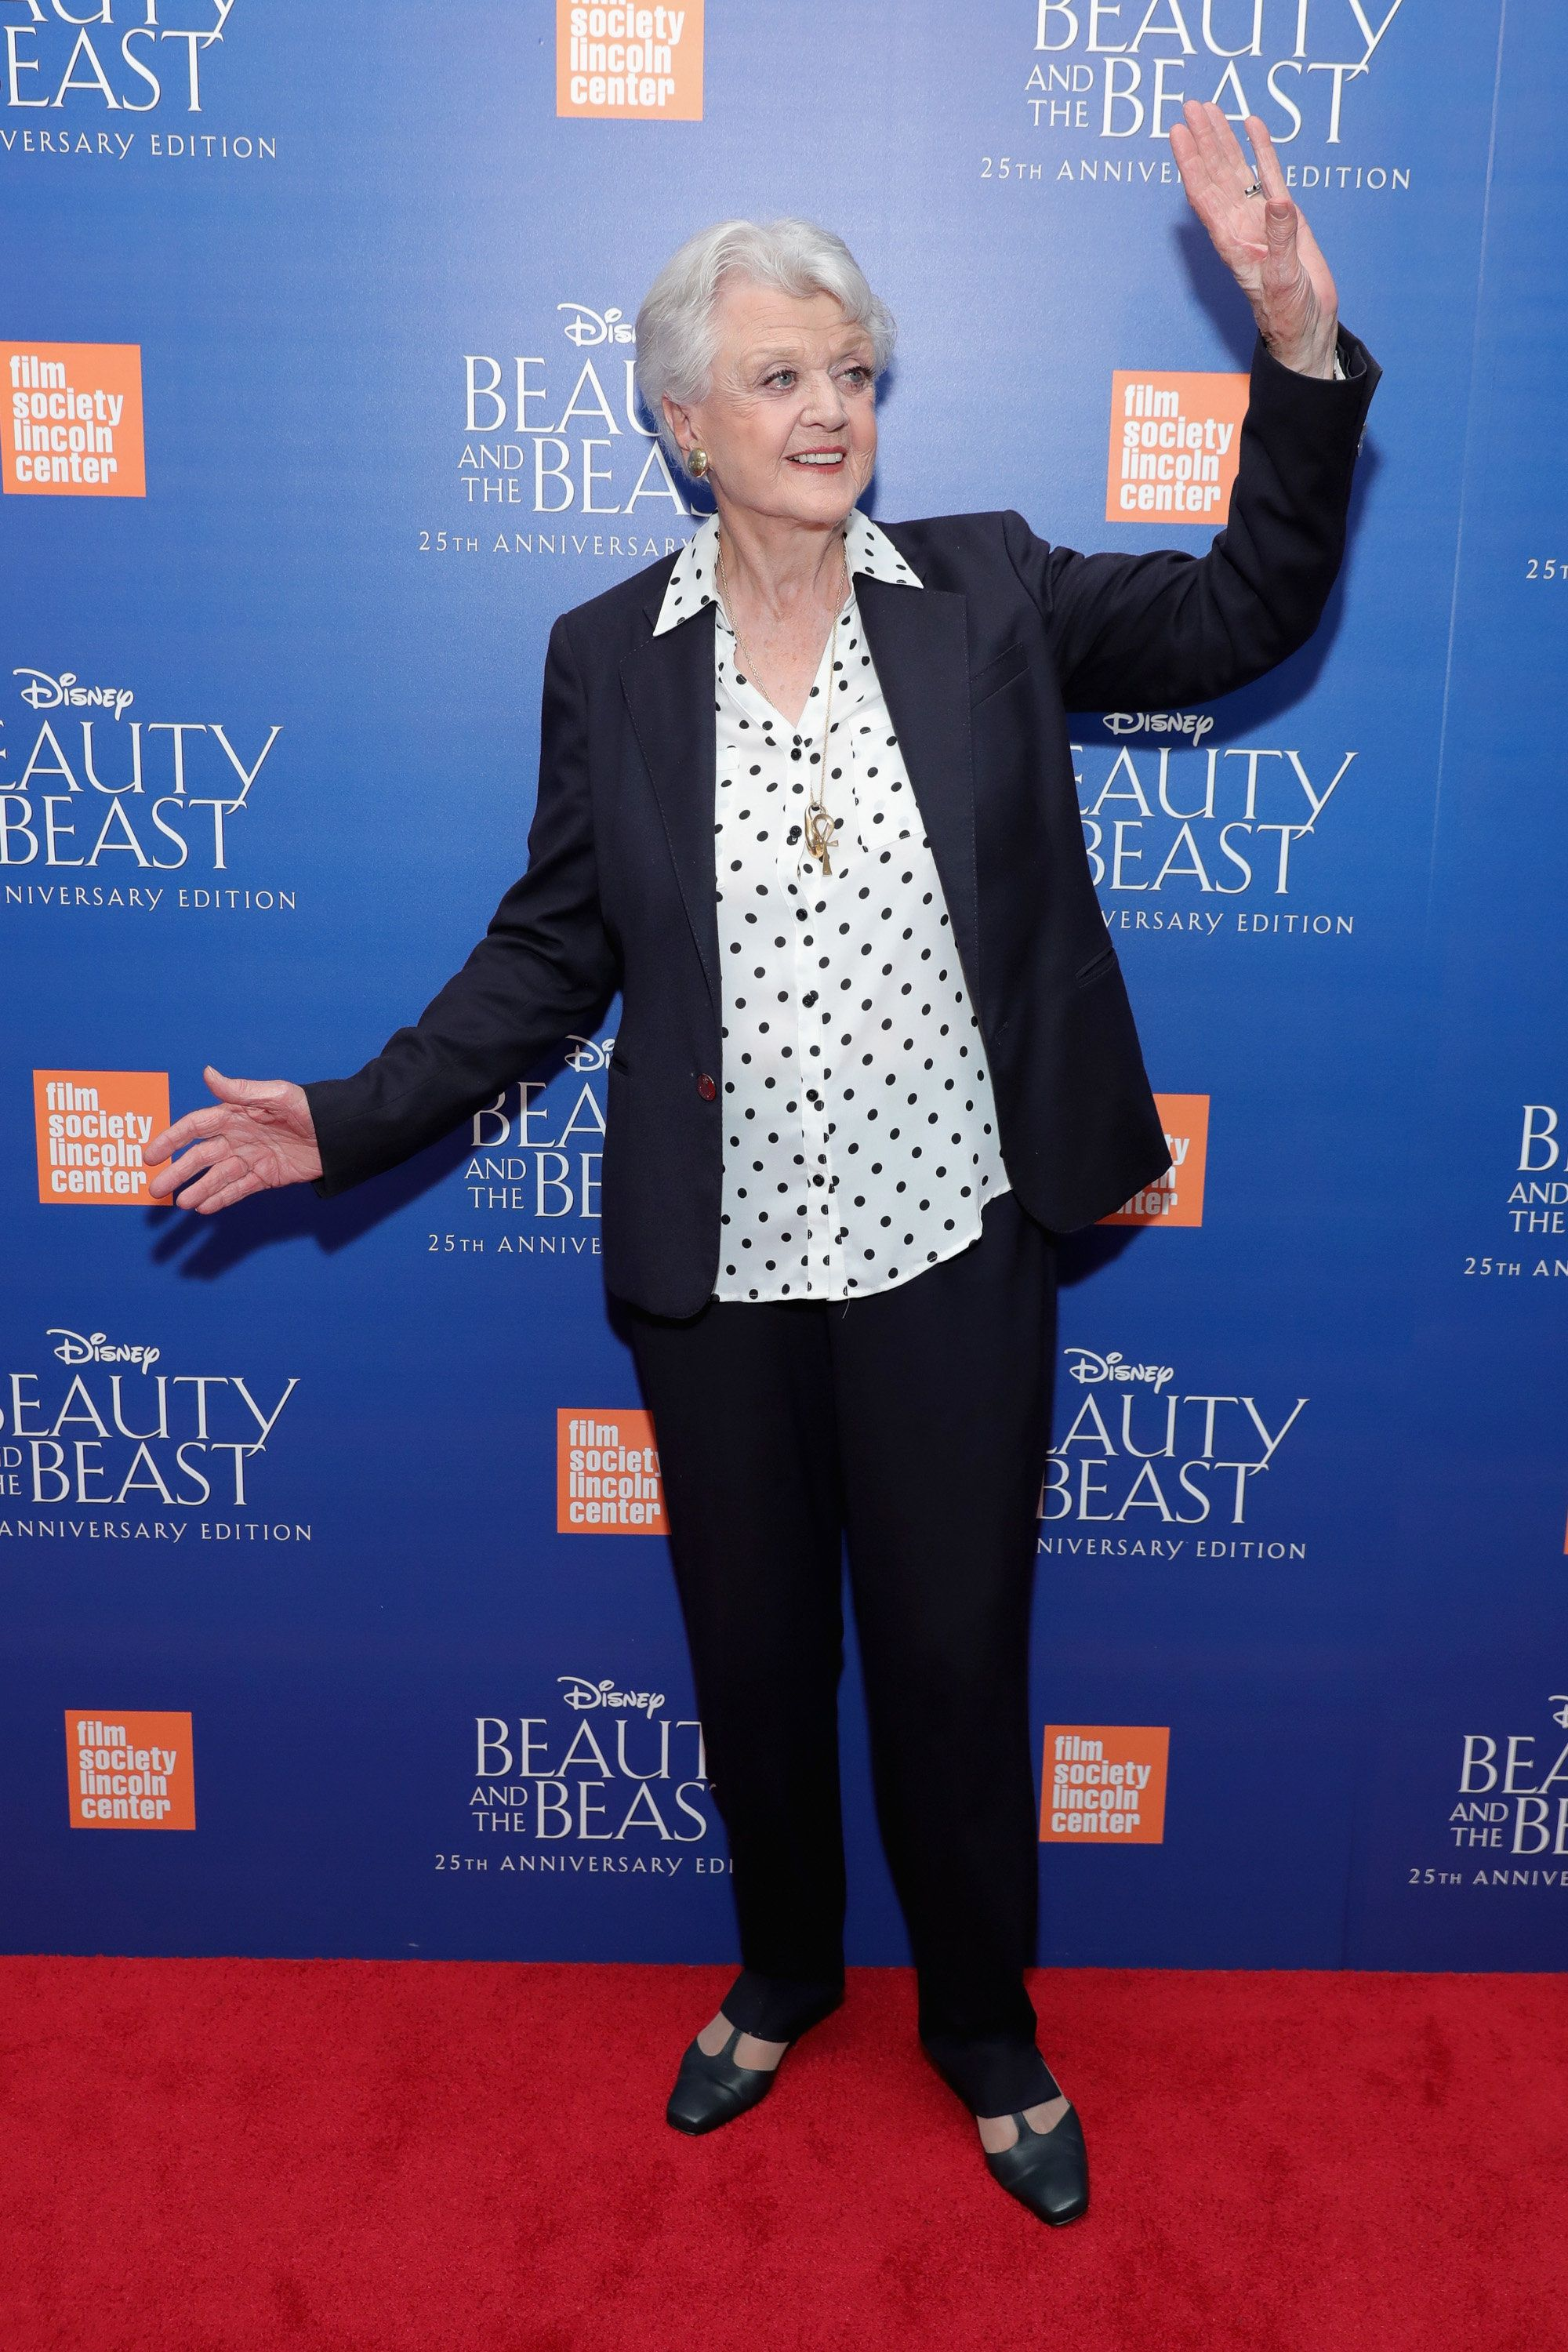 NEW YORK, NY - SEPTEMBER 18:  Angela Lansbury attends the special screening of Disney's 'Beauty and the Beast' to celebrate the 25th Anniversary Edition release on Blu-Ray and DVD on September 18, 2016 in New York City.  (Photo by Neilson Barnard/Getty Images for Walt Disney Studios Home Entertainment)